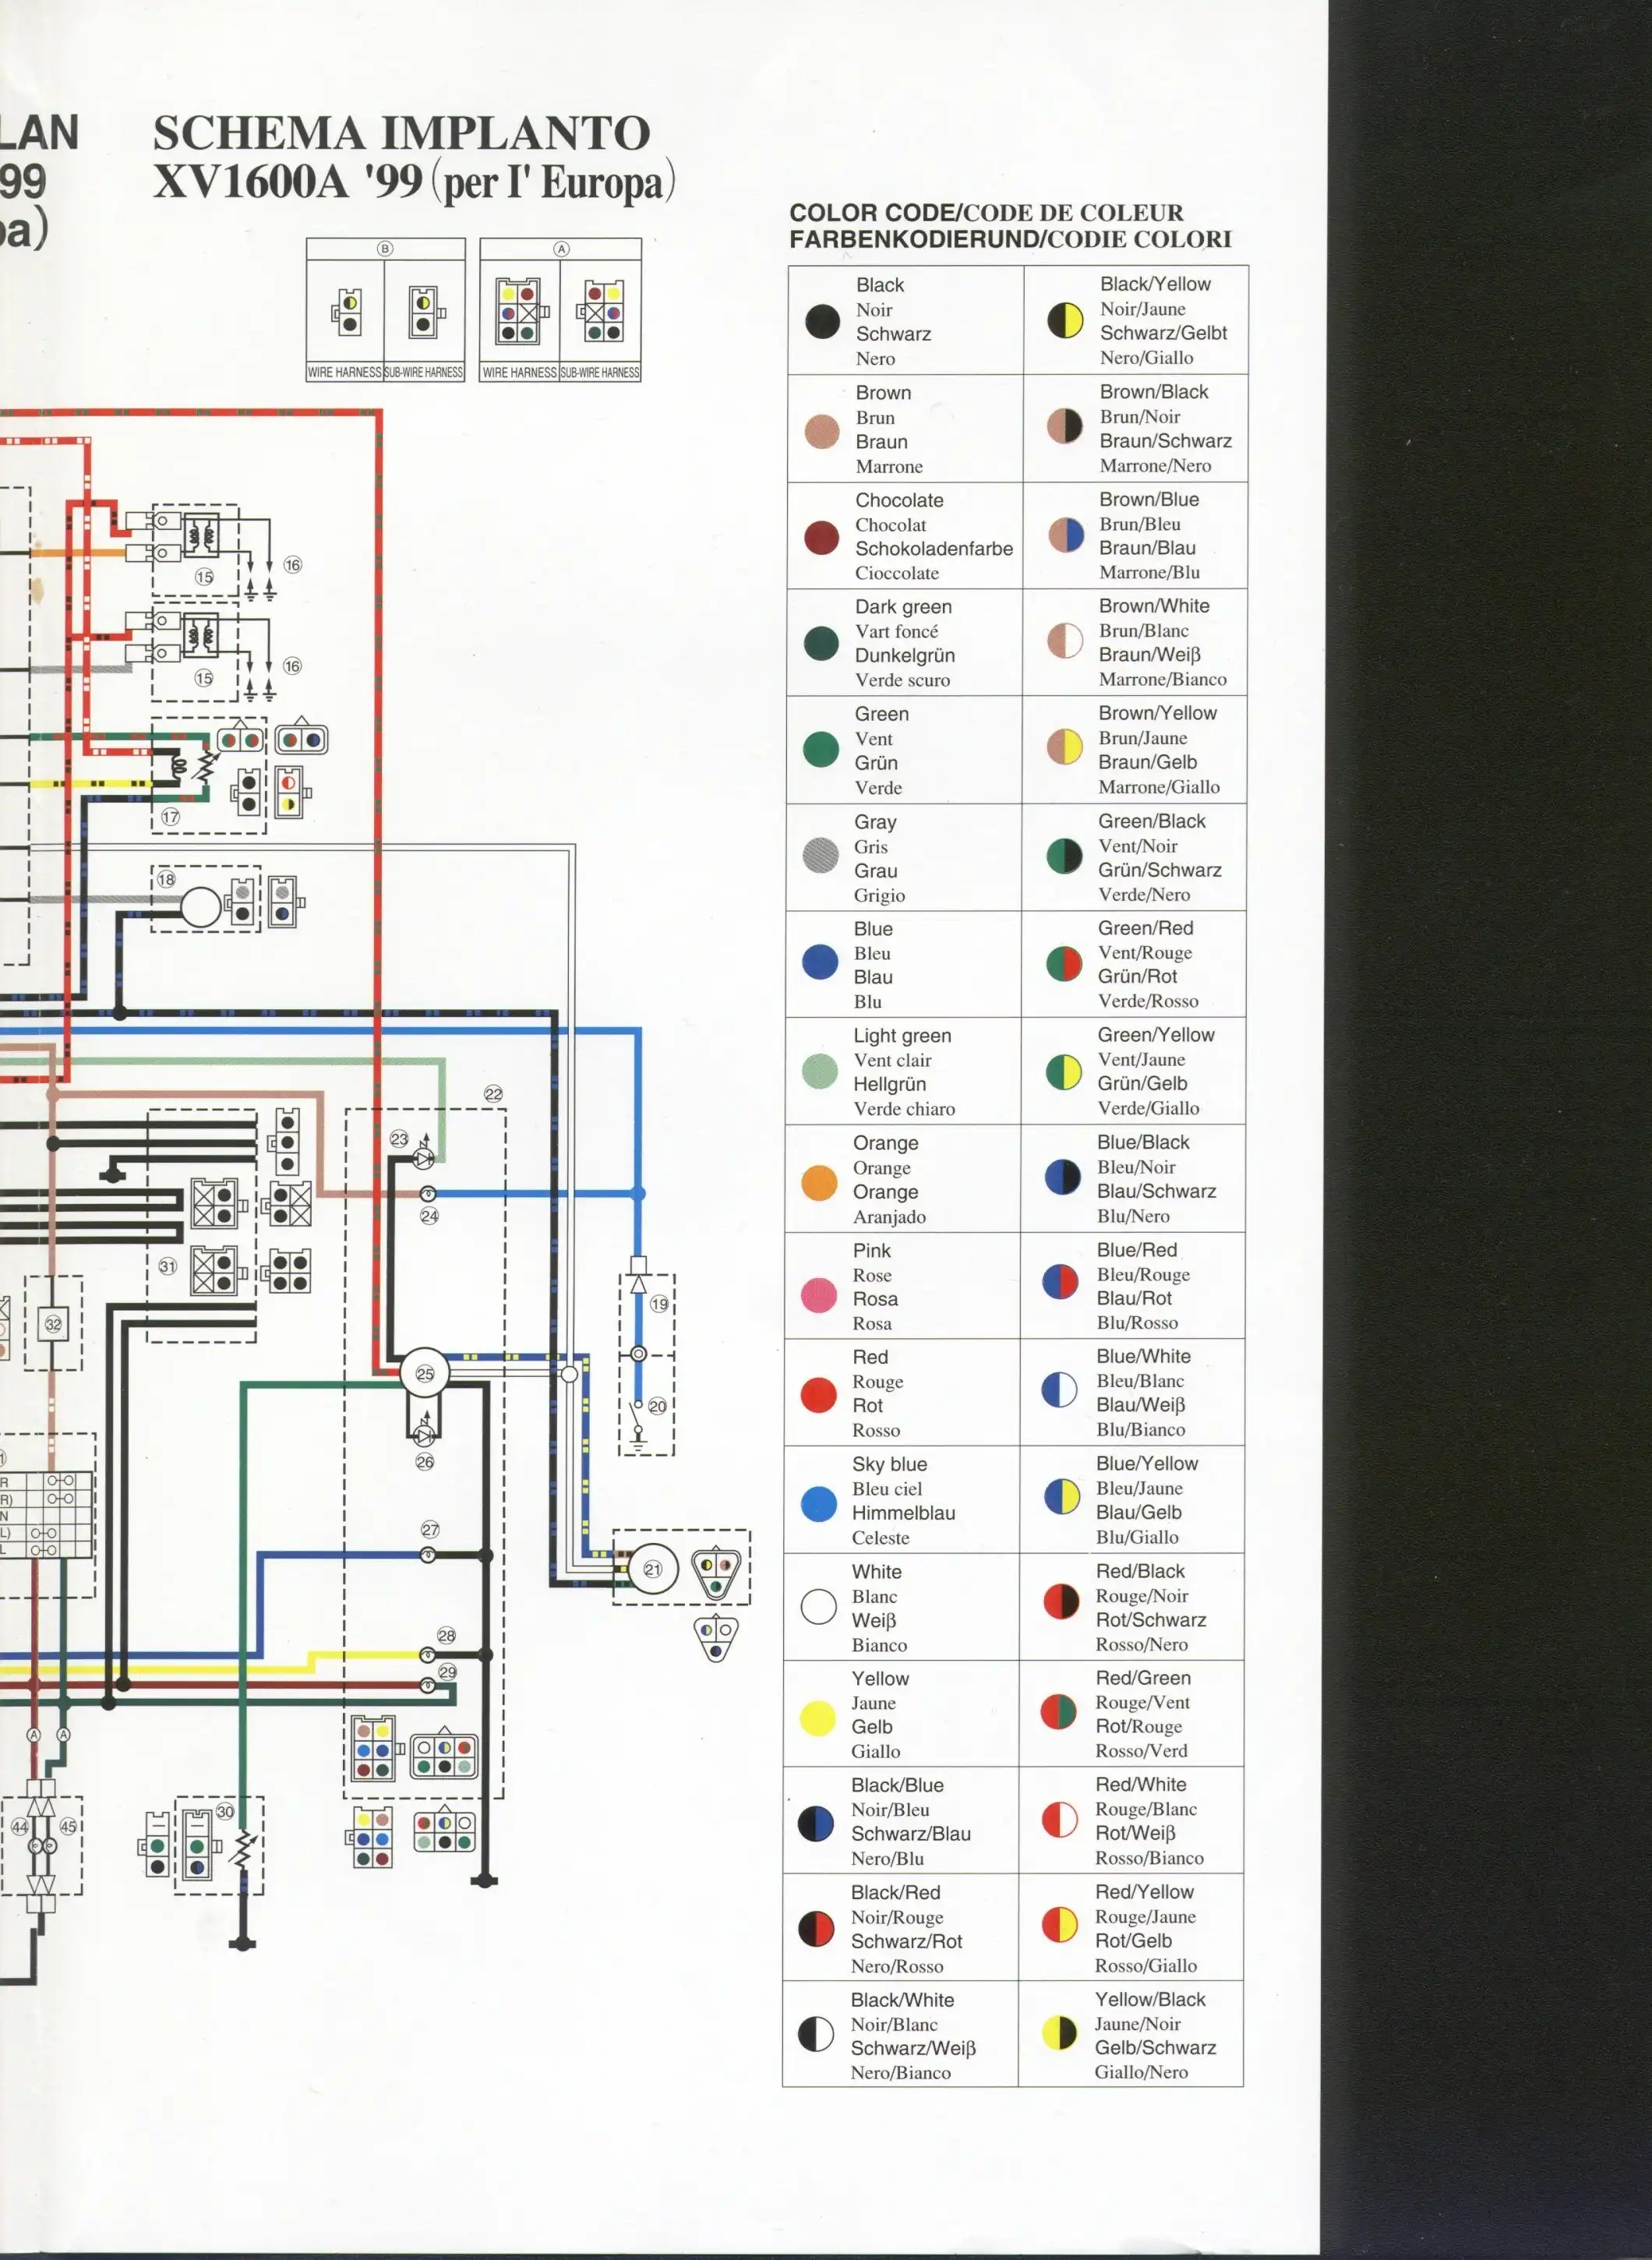 hight resolution of wiring key for xv1600 pdf file